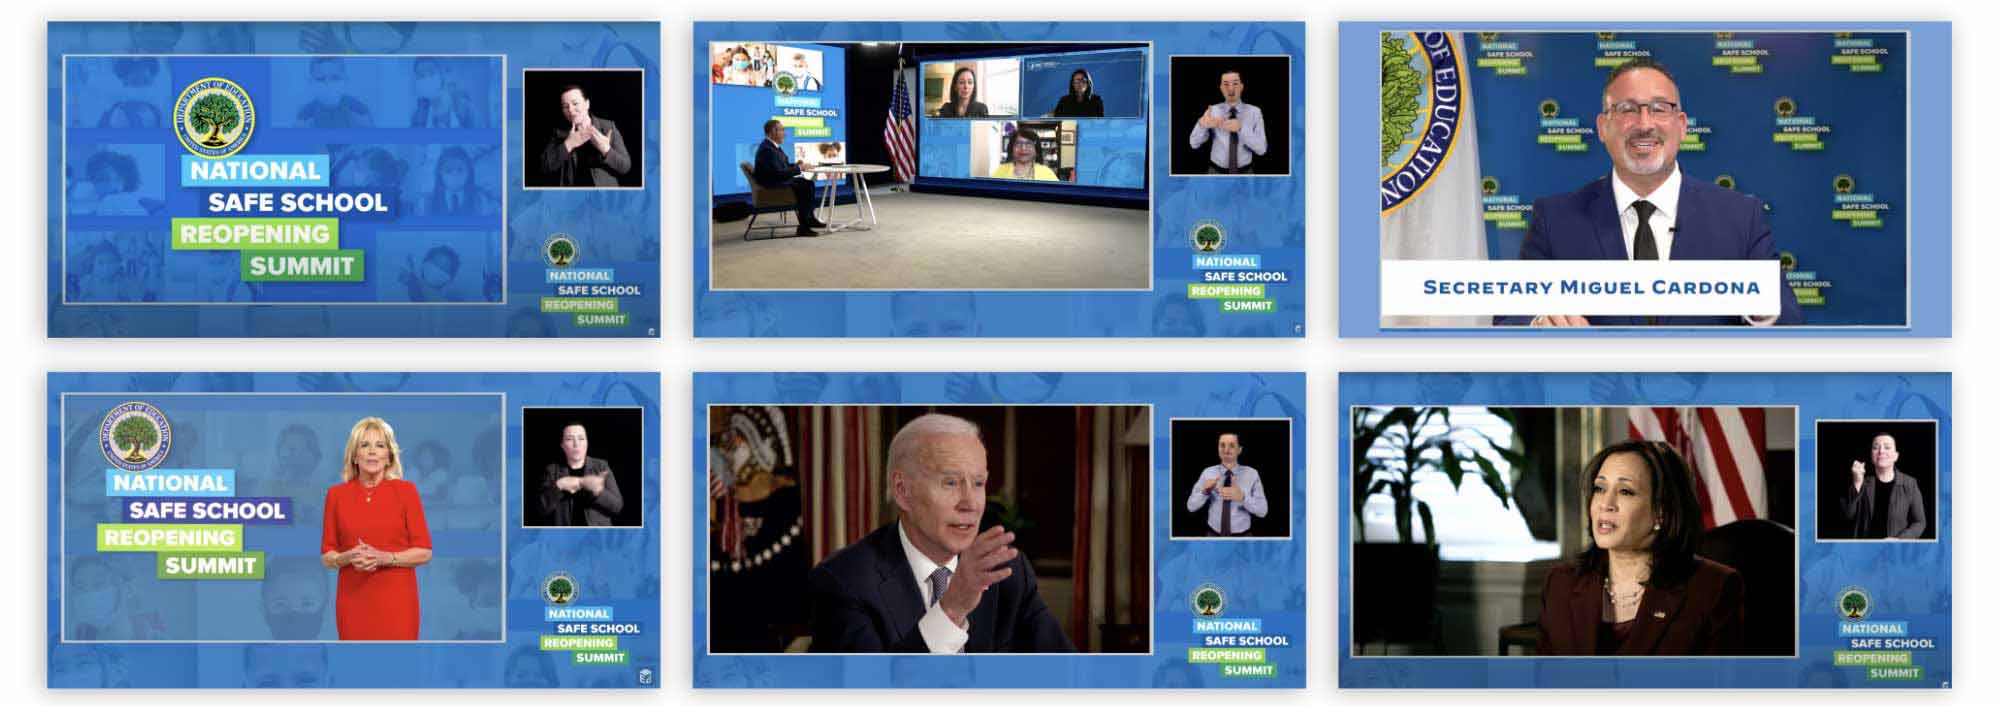 National Safe School Reopening Summit: Design of step-and-repeat virtual background graphics and presentation template